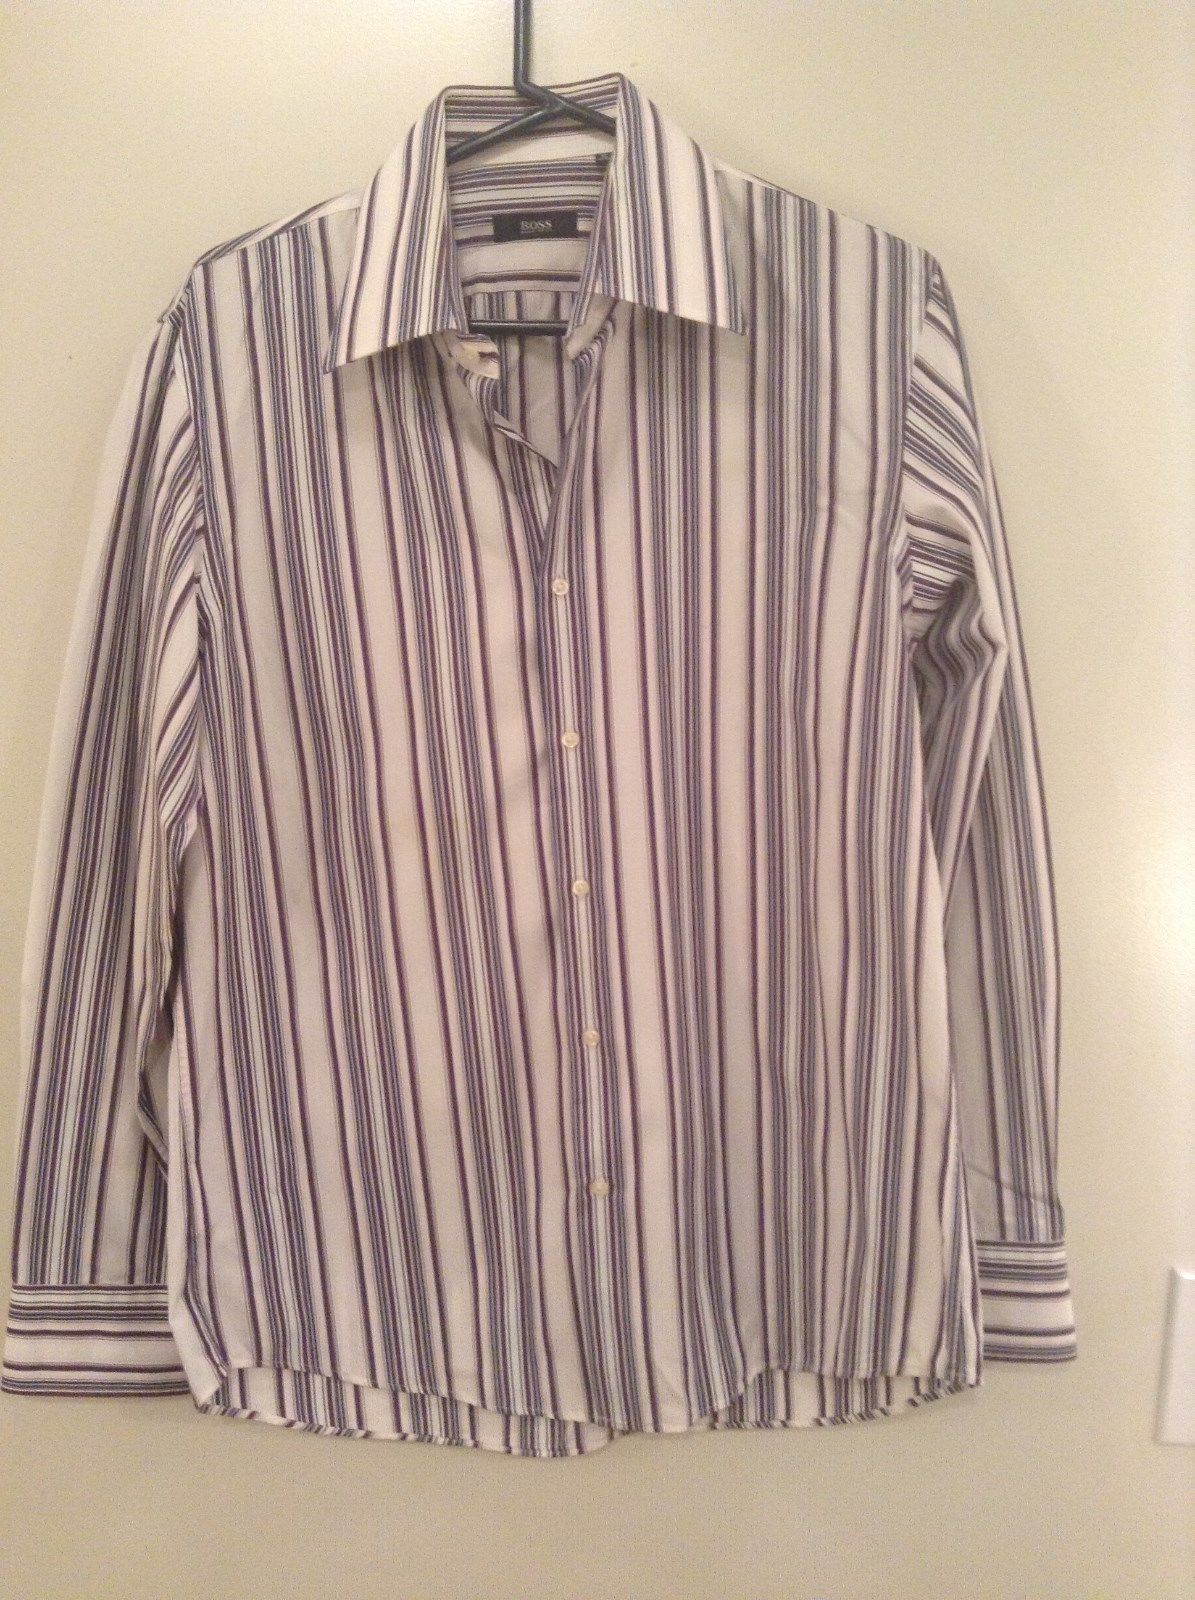 Hugo Boss Blue Pink Red White Striped Button Up Long Sleeve Shirt Size 16 by 34